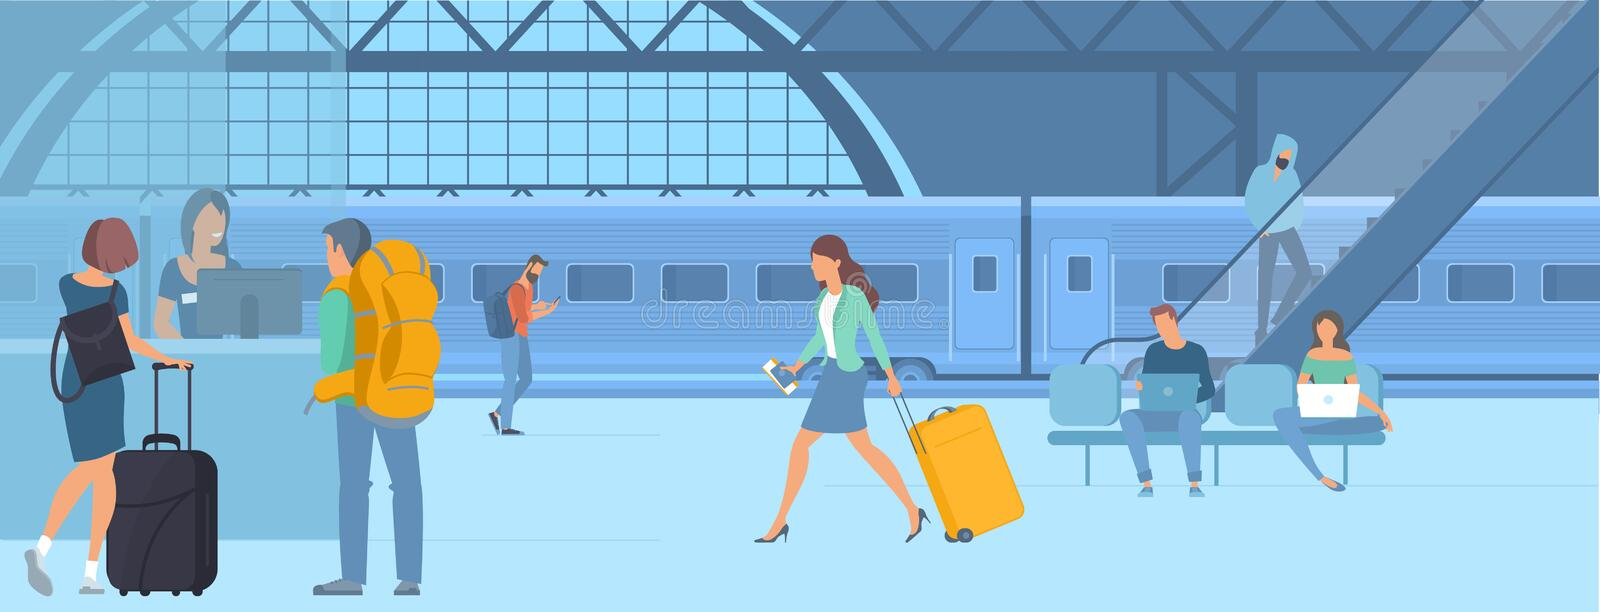 Travellers at railway station. Flat design illustration of young men and women travellers at railway train station waiting for departure. Webpage promotion and vector illustration